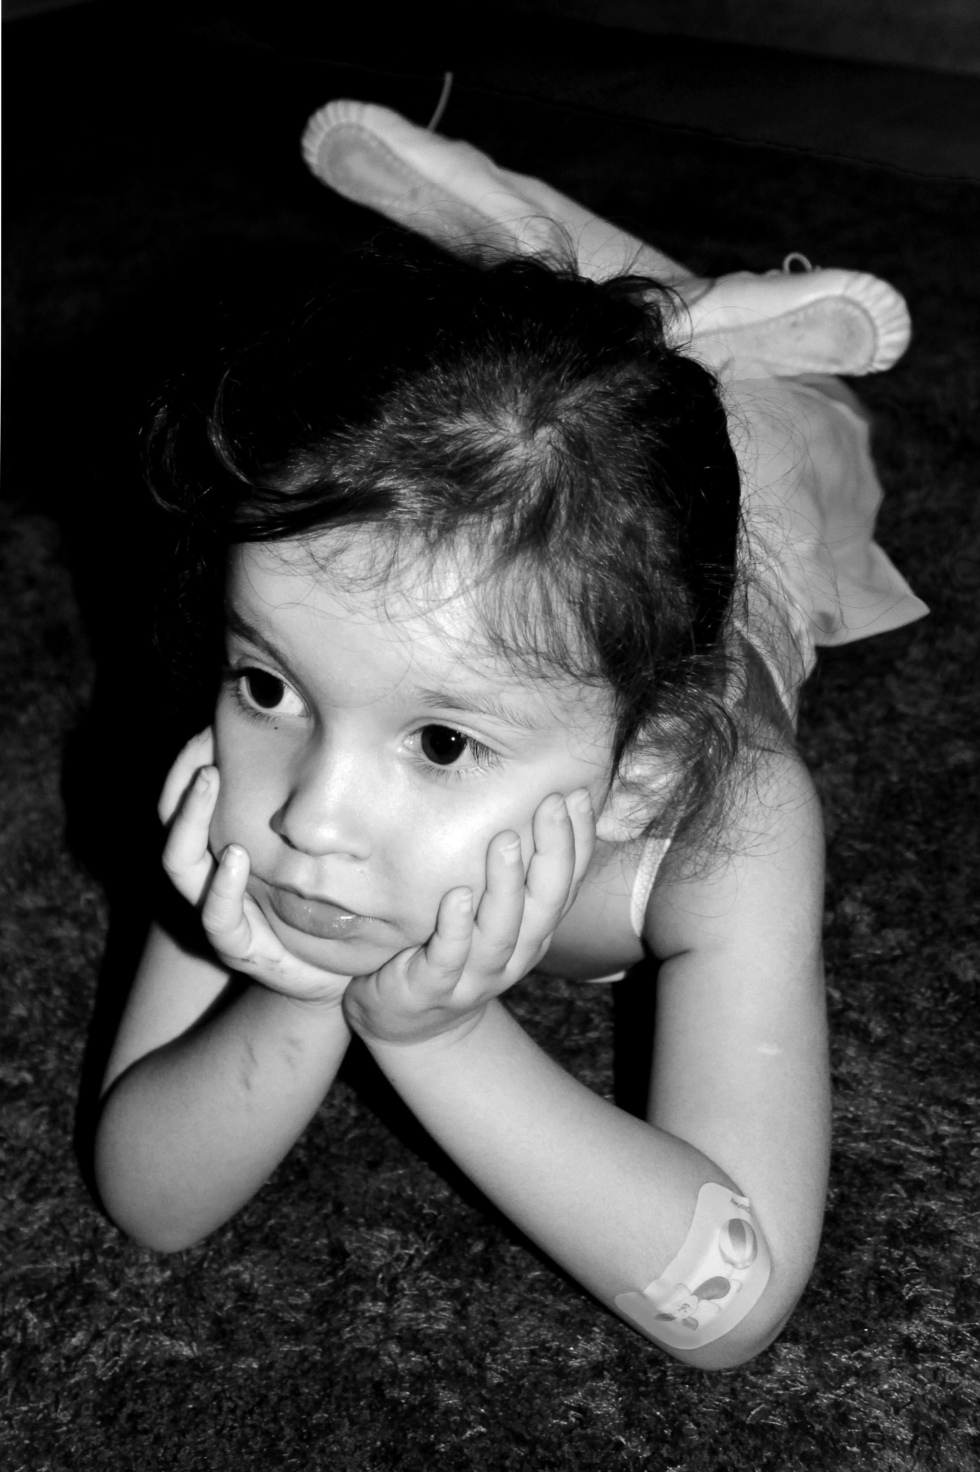 Black & white close-up image of a thoughtful young ballerina with a band aid on the elbow